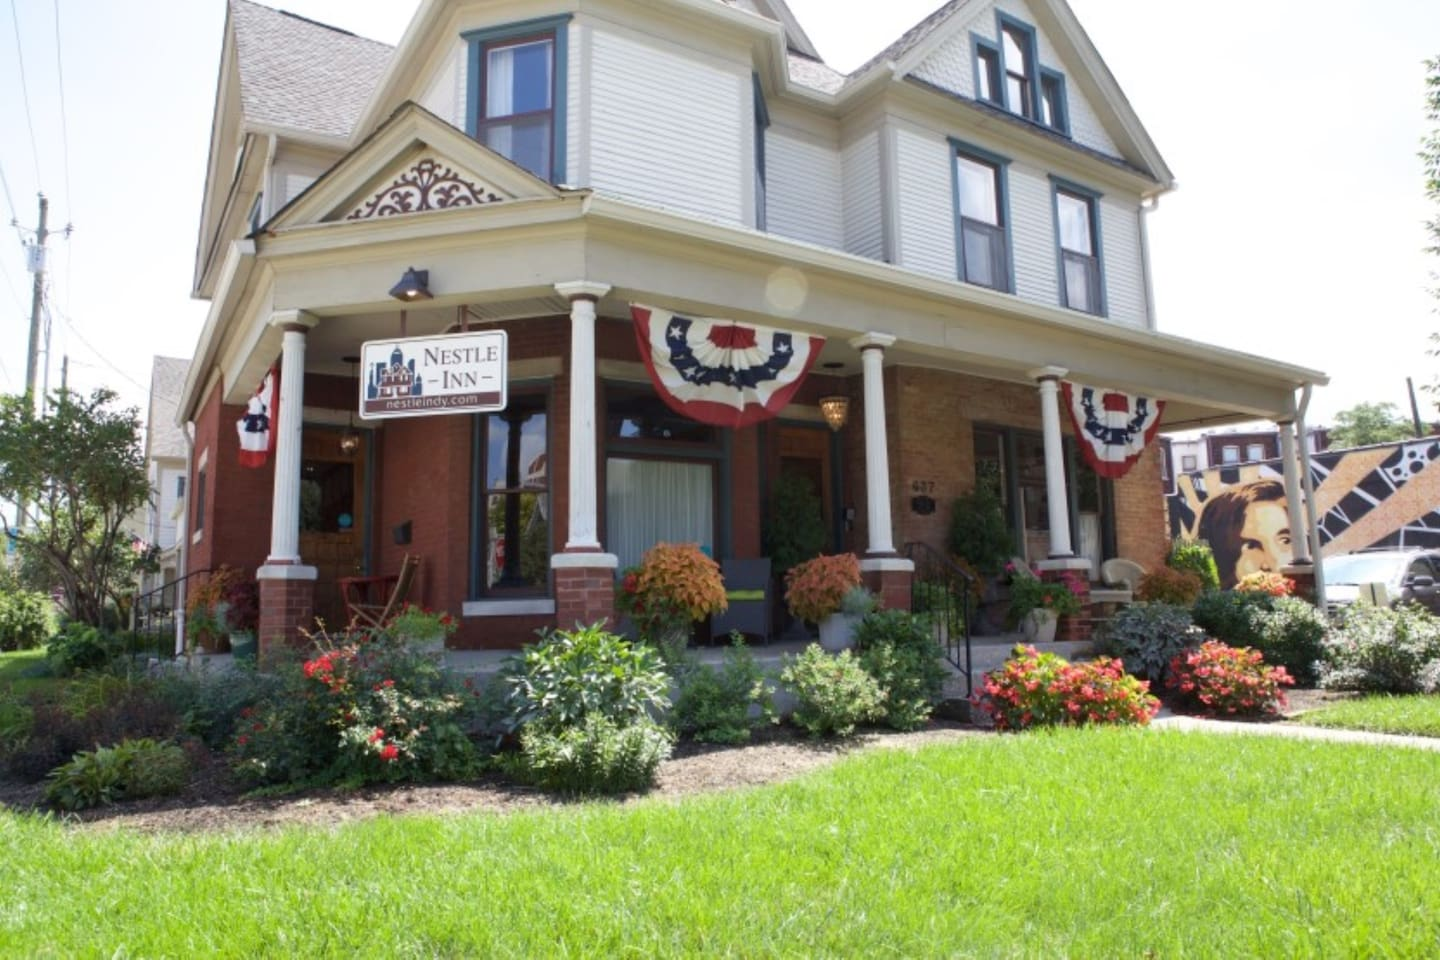 We're not your grandma's B&B!  Afraid of a B&B?  Heard of a B&B stay gone wrong?  No worries...your stay will be modern, easy and located one block off Mass Ave!  Breakfast is inlcuded at Henry's Coffee Bistro or Coat Check Coffee.